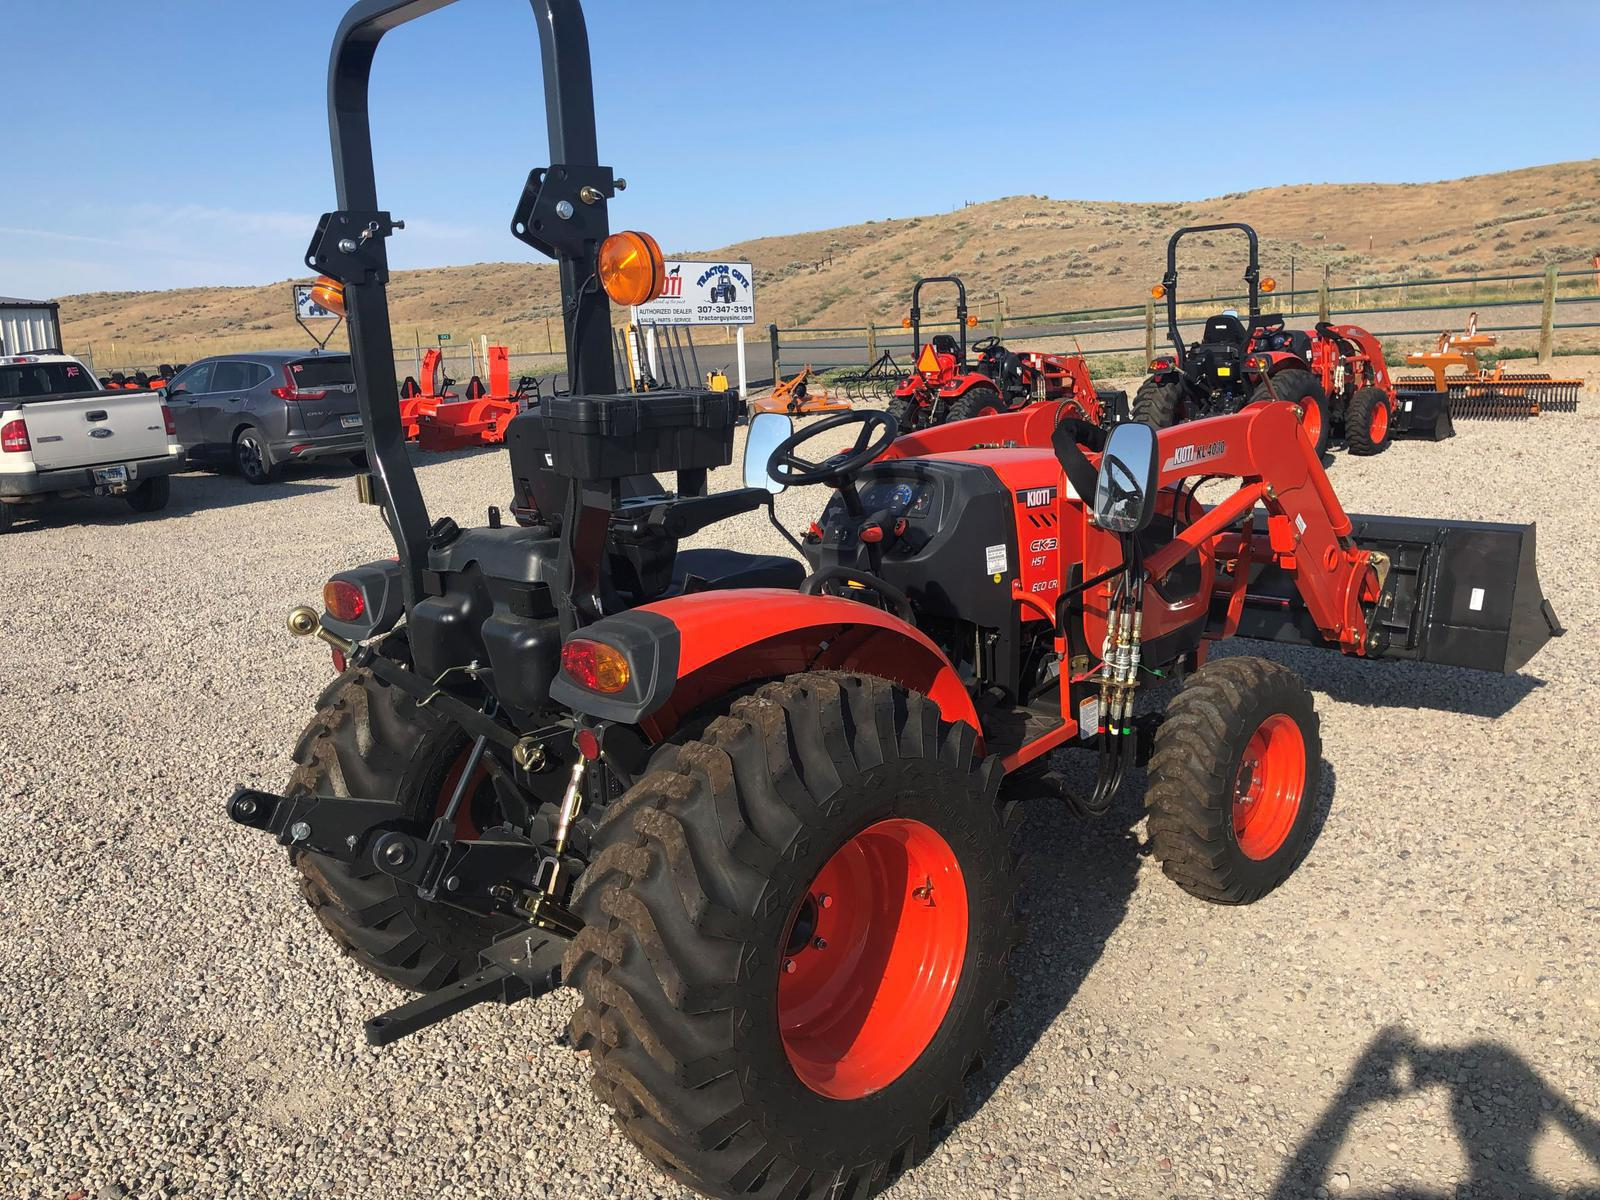 2019 KIOTI CK3510SE HST for sale in Worland, WY  Tractor